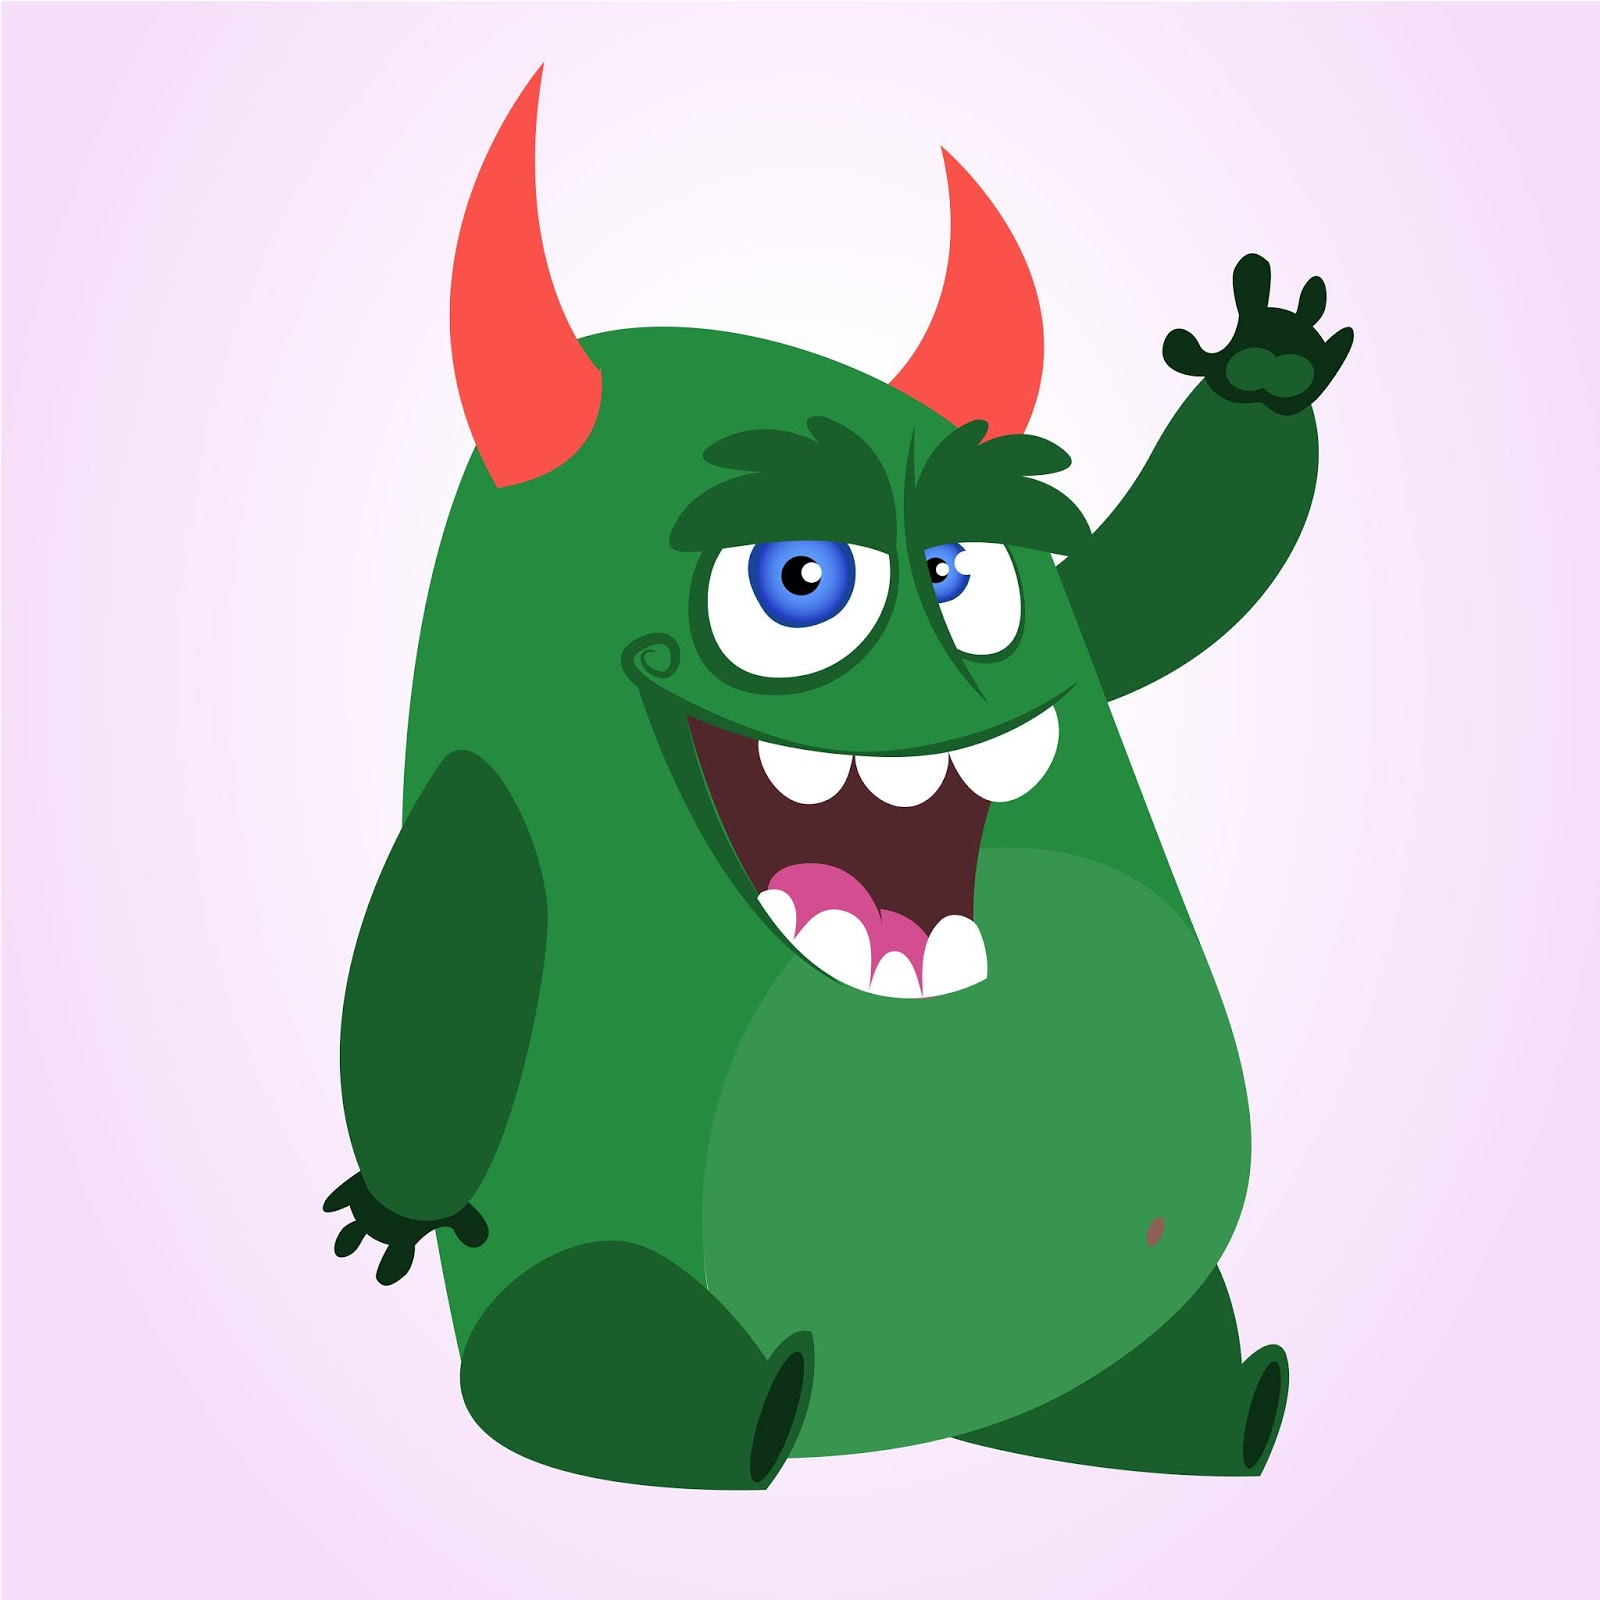 Funny Cartoon Monster Waving Vector Illustration Halloween Free Download Vector CDR, AI, EPS and PNG Formats